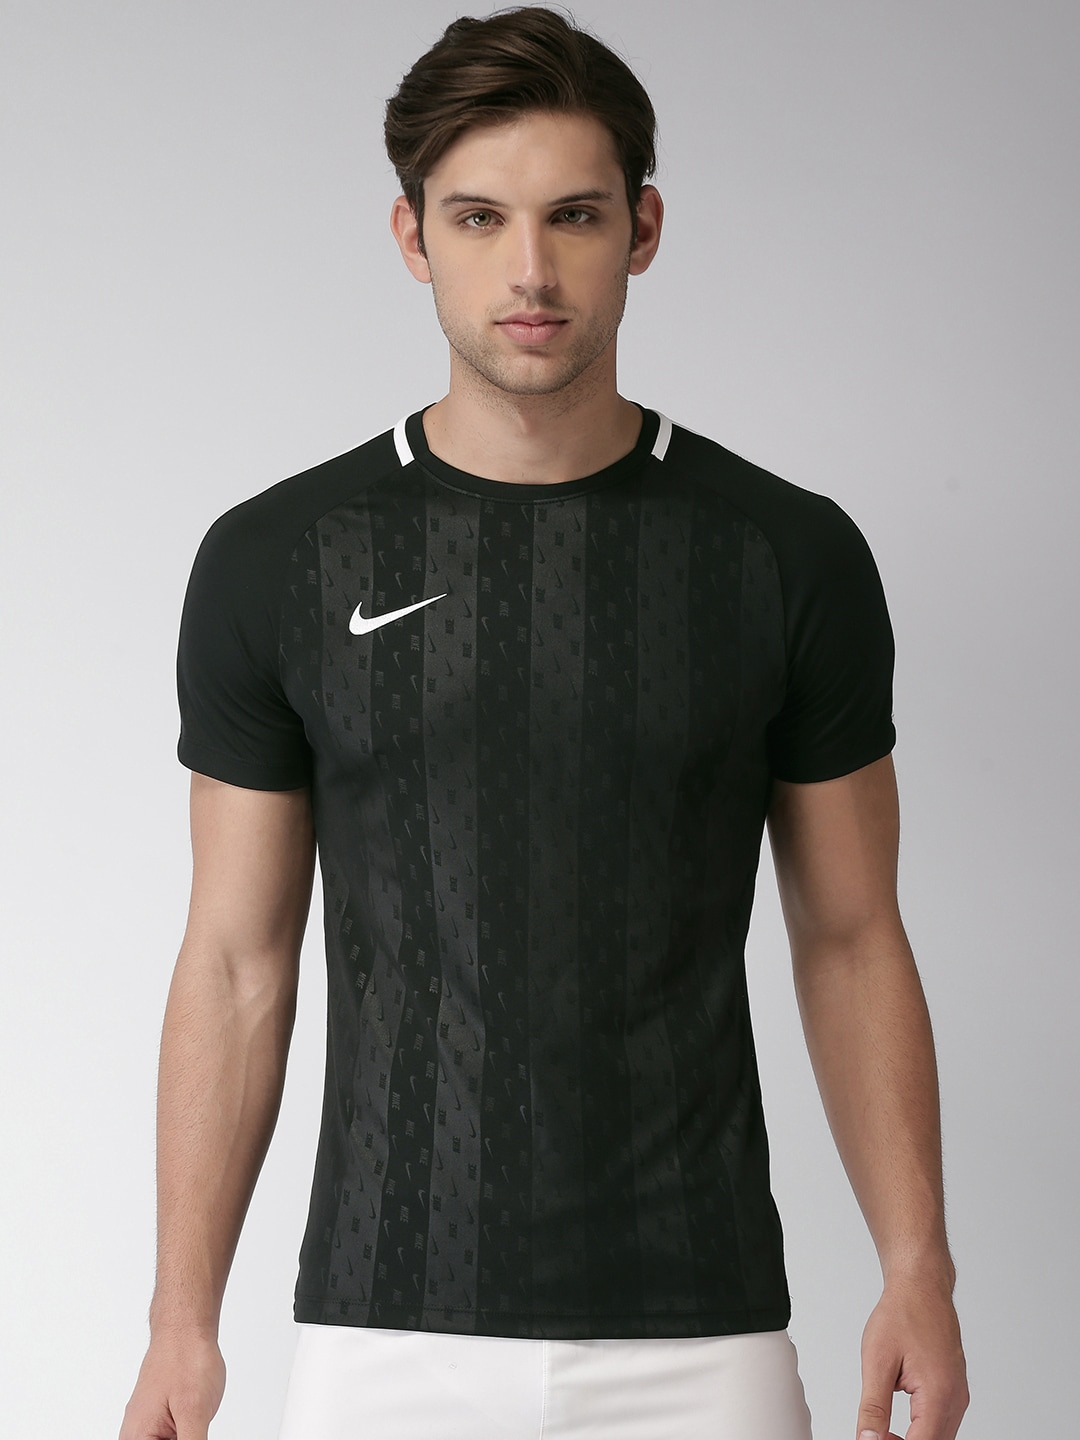 India T Buy Online Shirts Tshirts In Nike Myntra YaBqCUx